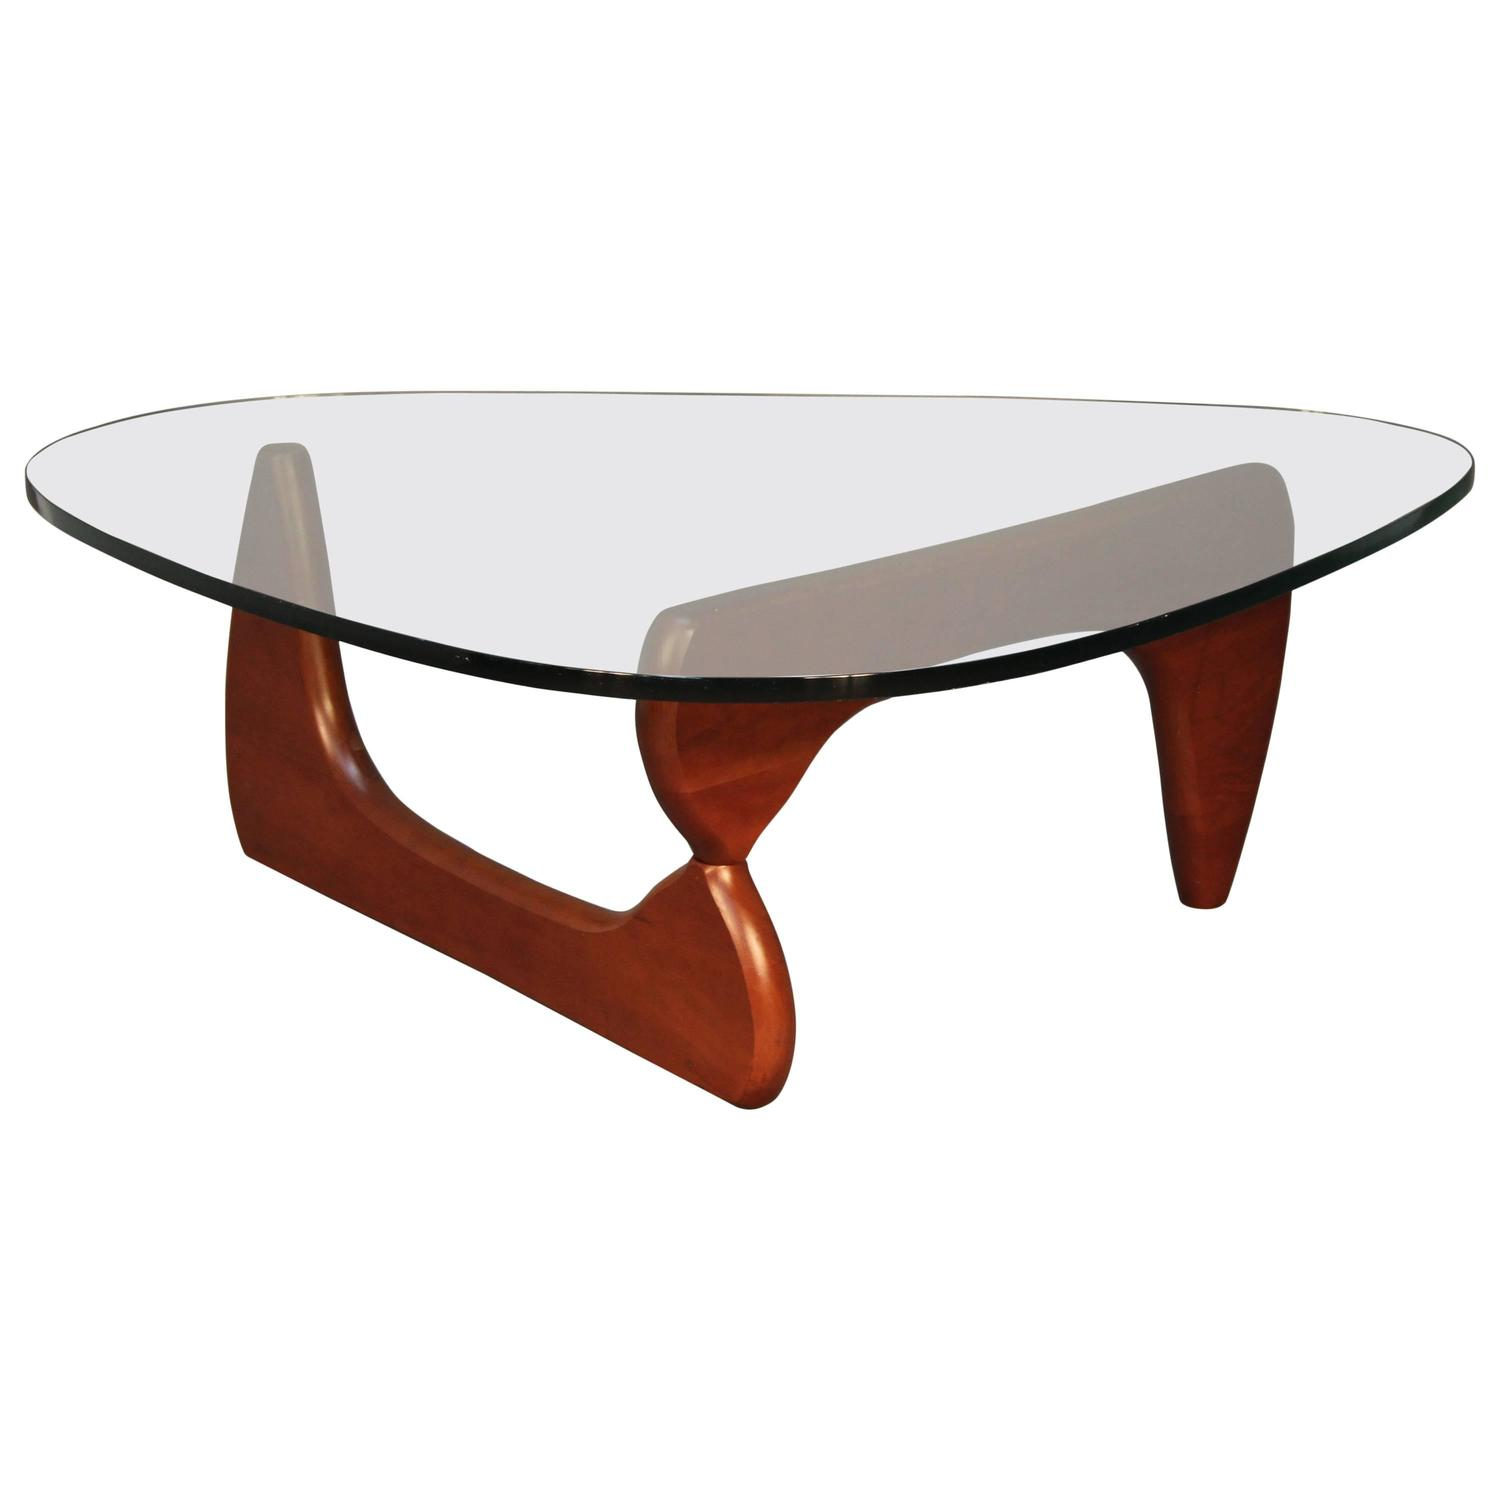 Sculptural Coffee Tables Isamu Noguchi Sculptural Coffee Table At 1stdibs